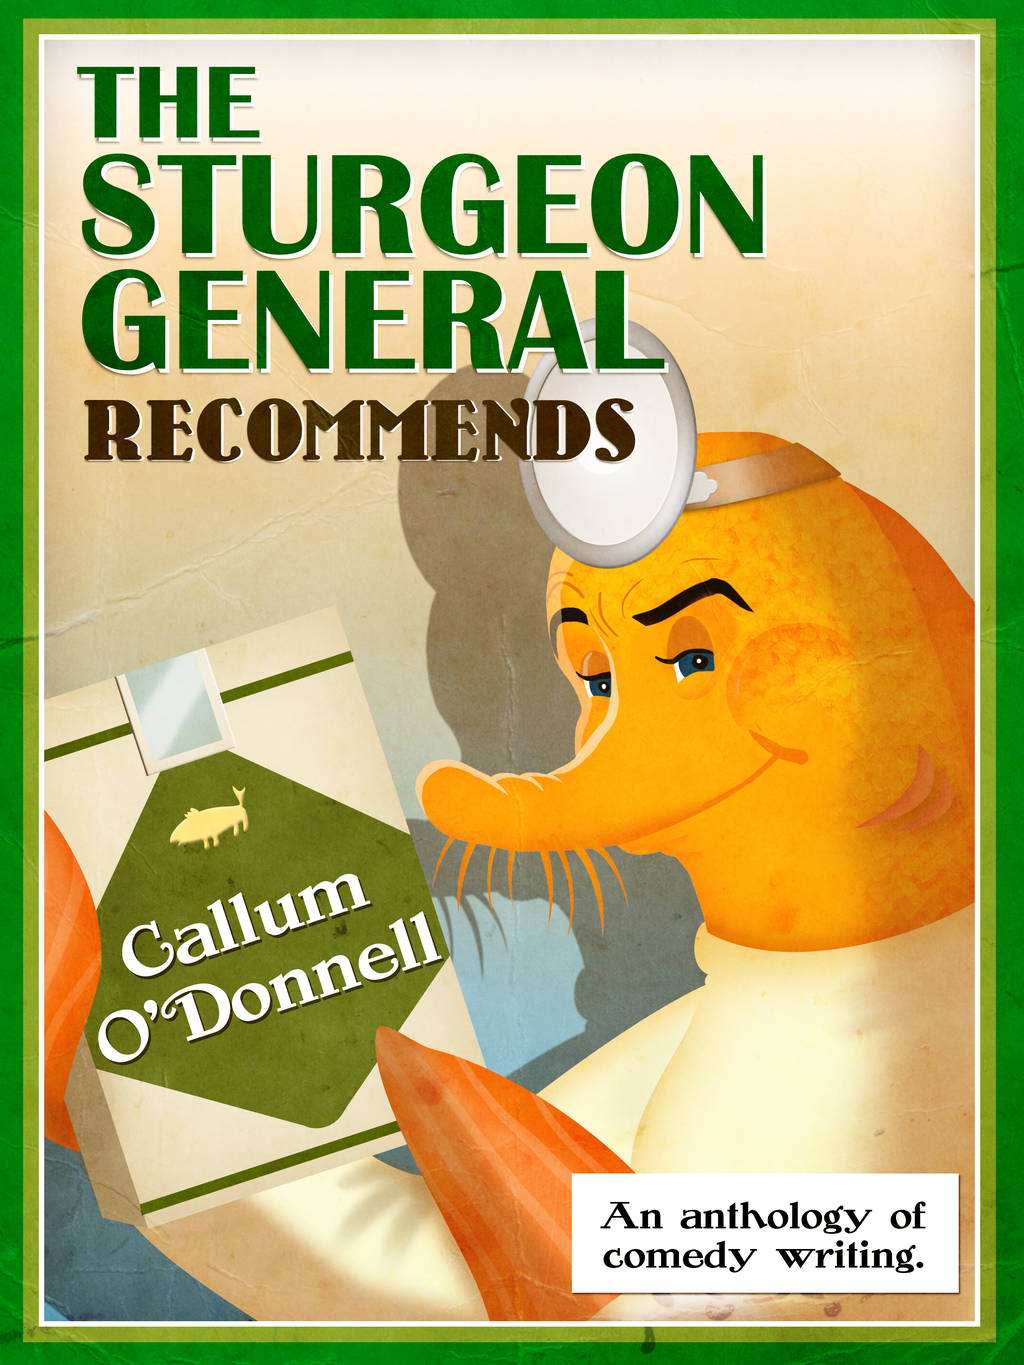 The Sturgeon General Recommends Callum O'Donnell